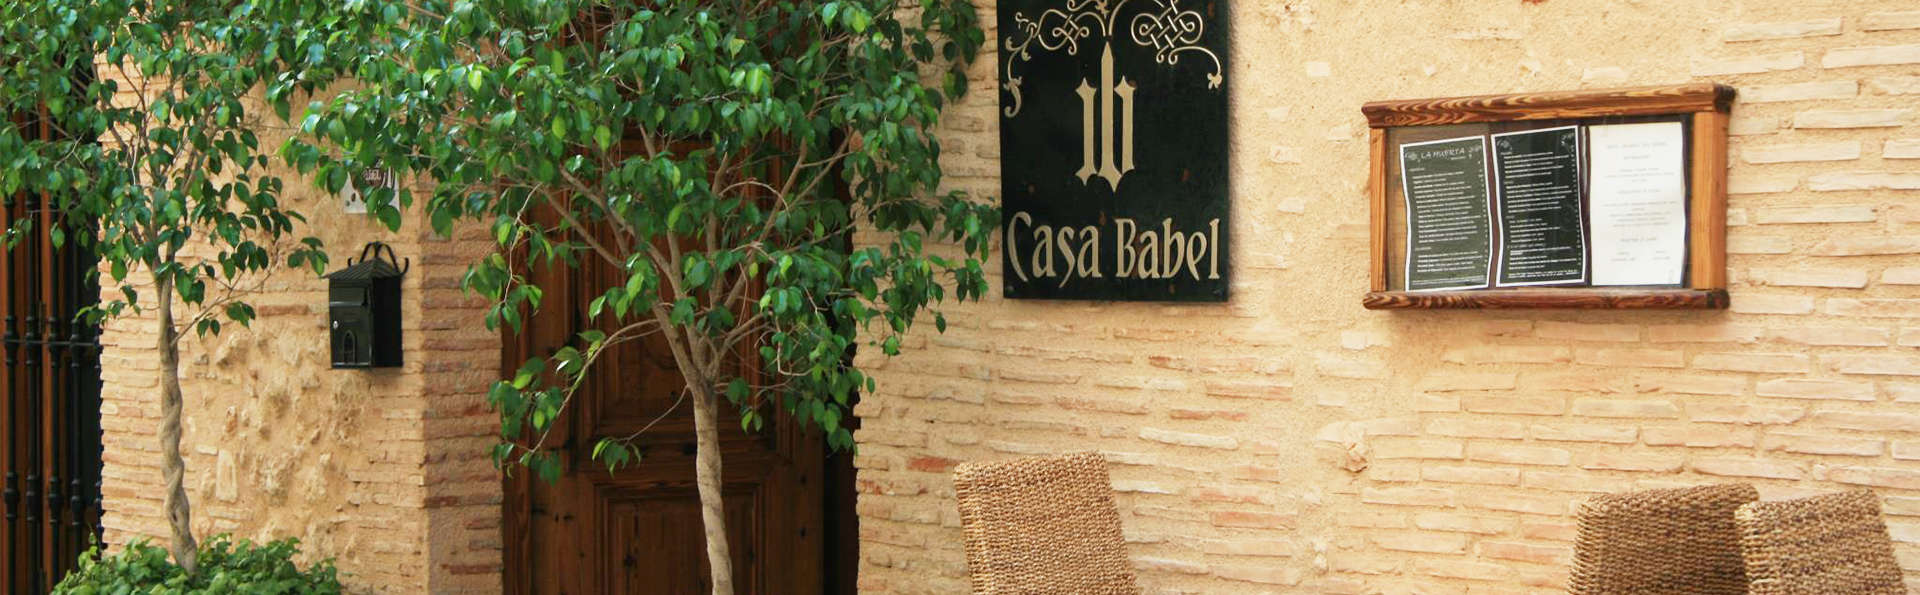 Hotel Casa de Babel - EDIT_ext3.jpg